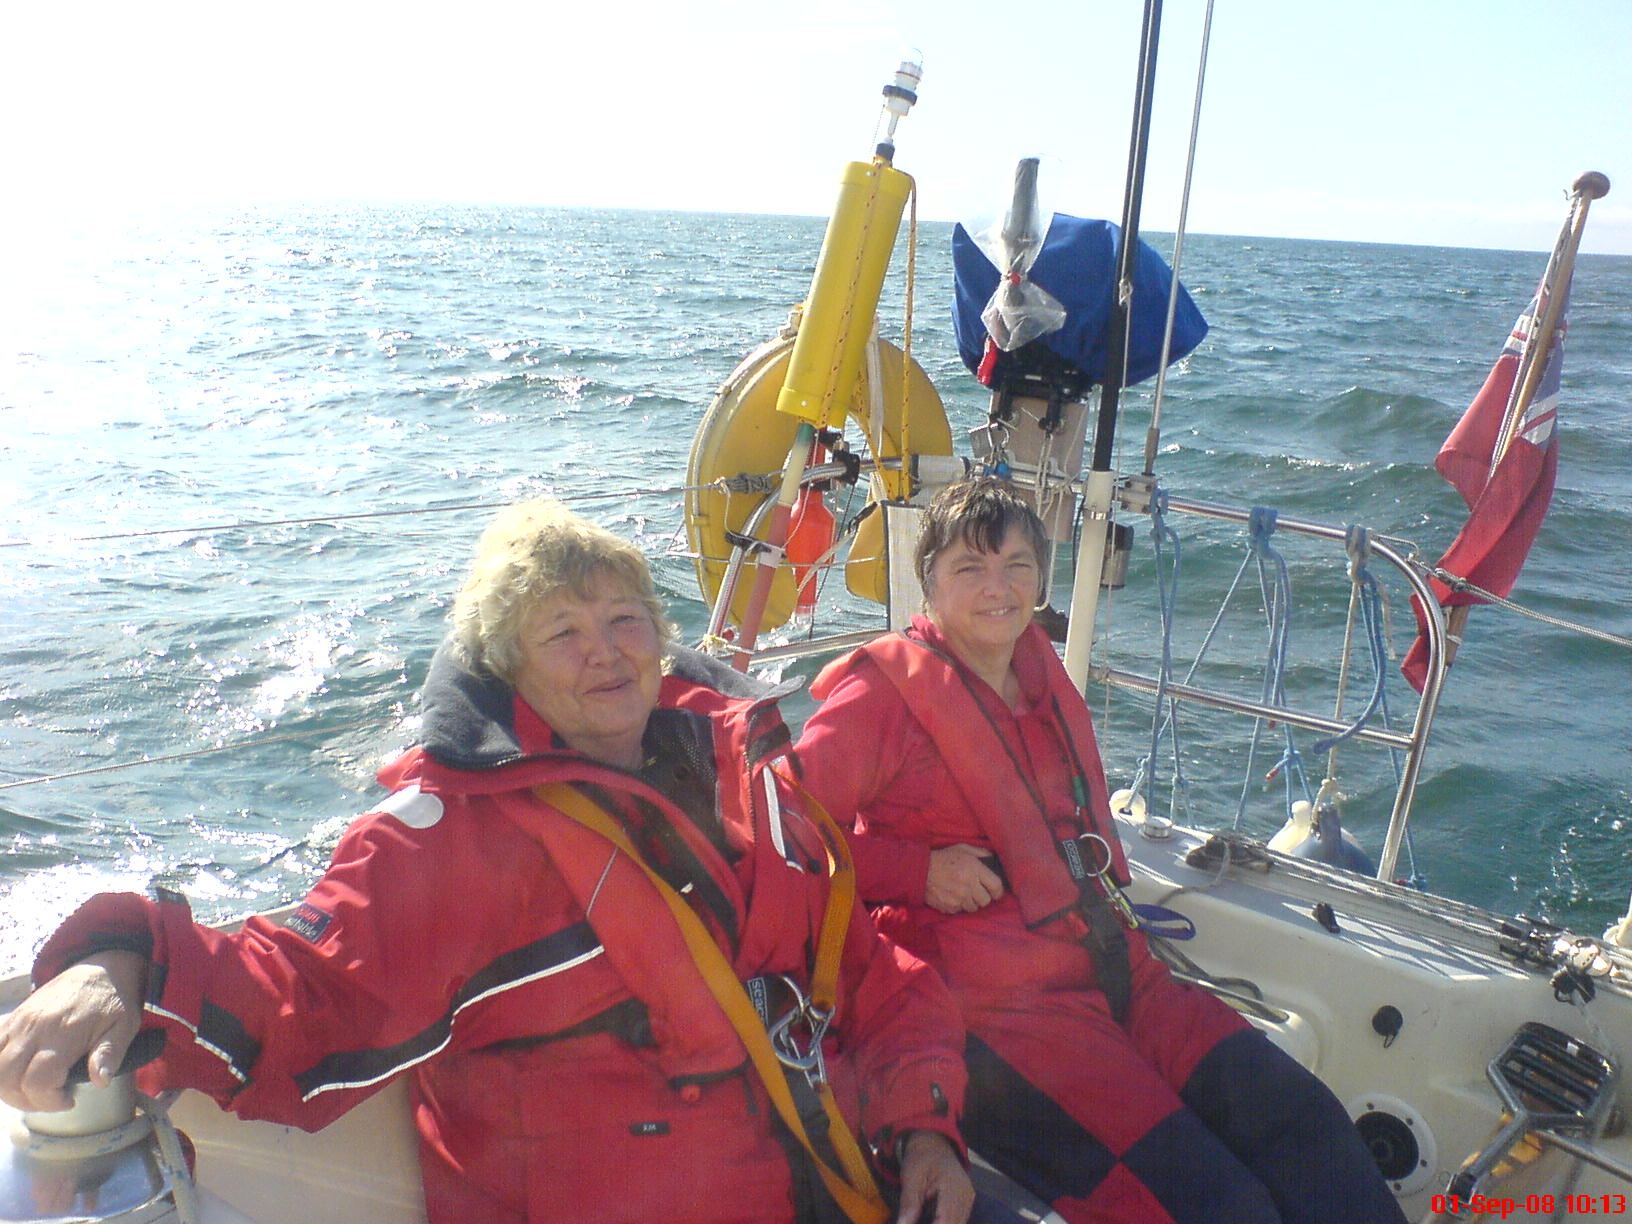 Frances and Liz, Arbroath to Inverness.